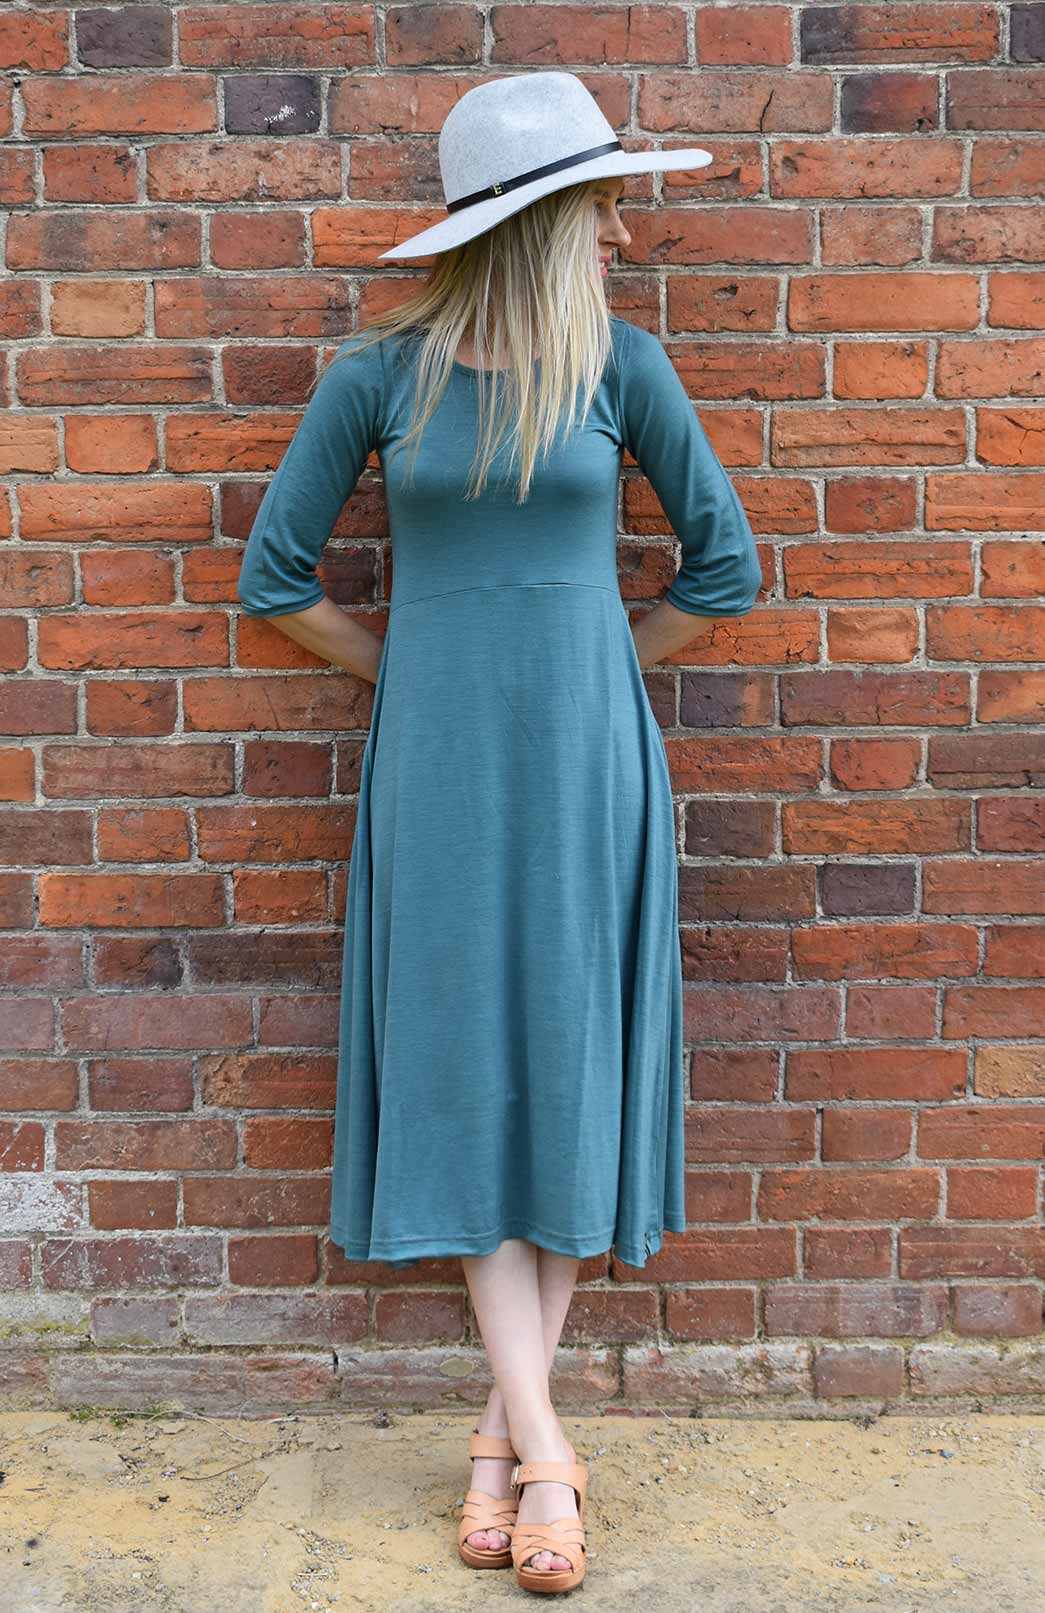 Amelia Dress - Women's Sage Green Merino Wool Dress with Elbow Length Sleeves, High Neckline, Full Skirt and Waist Seam - Smitten Merino Tasmania Australia